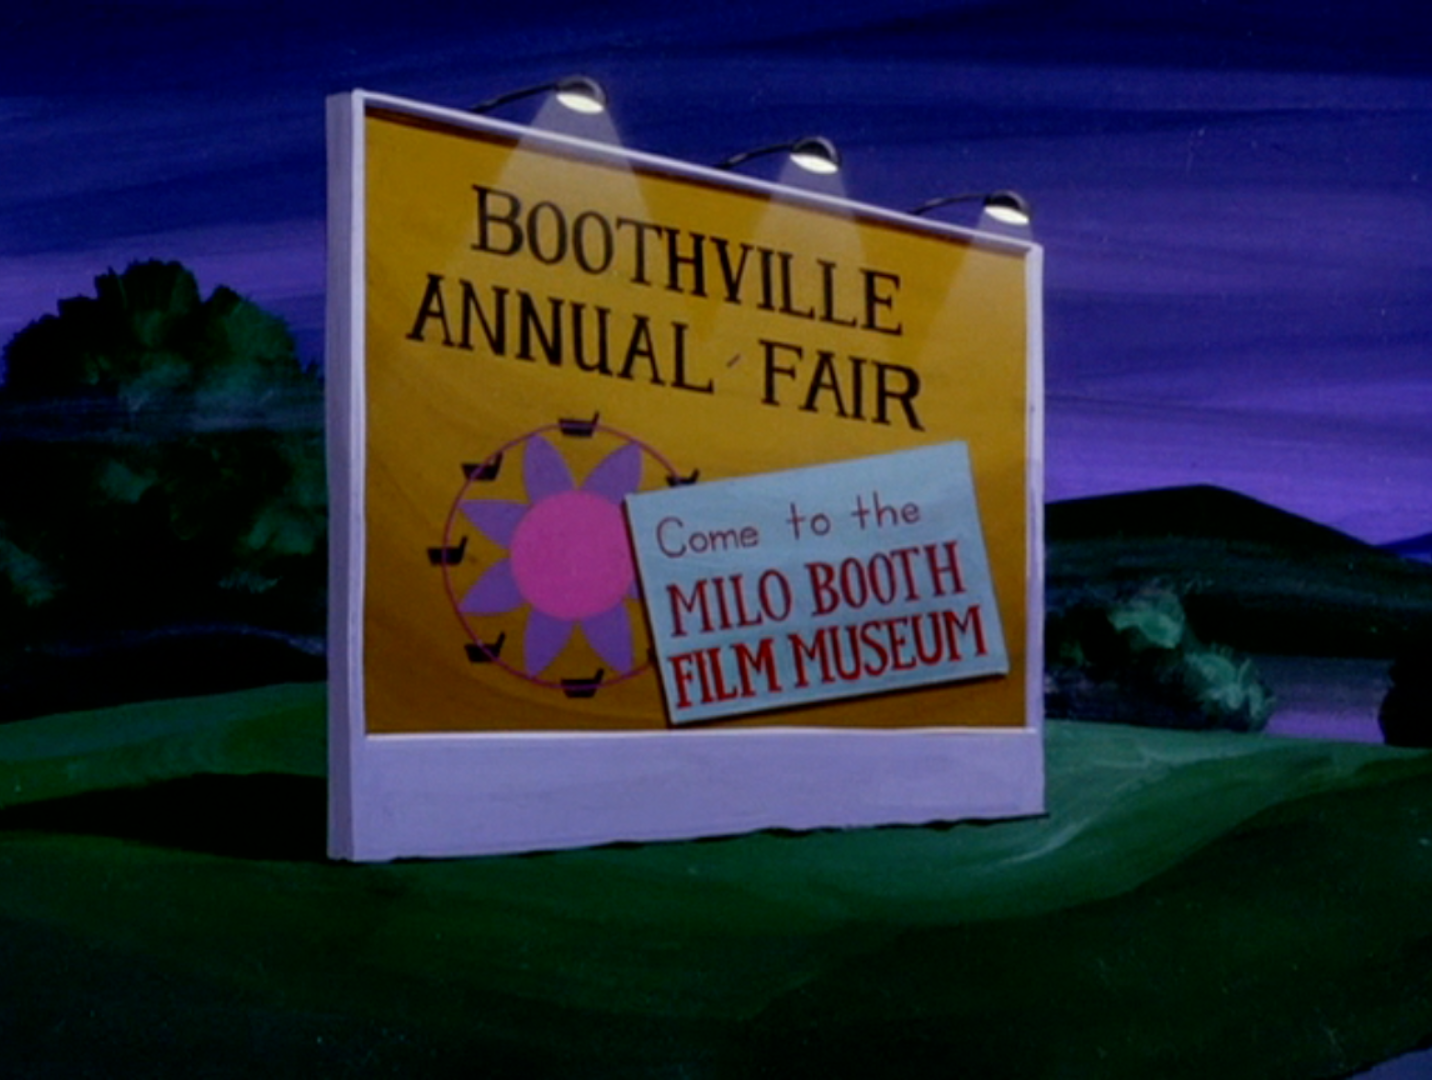 File:Boothville Annual Fair.png